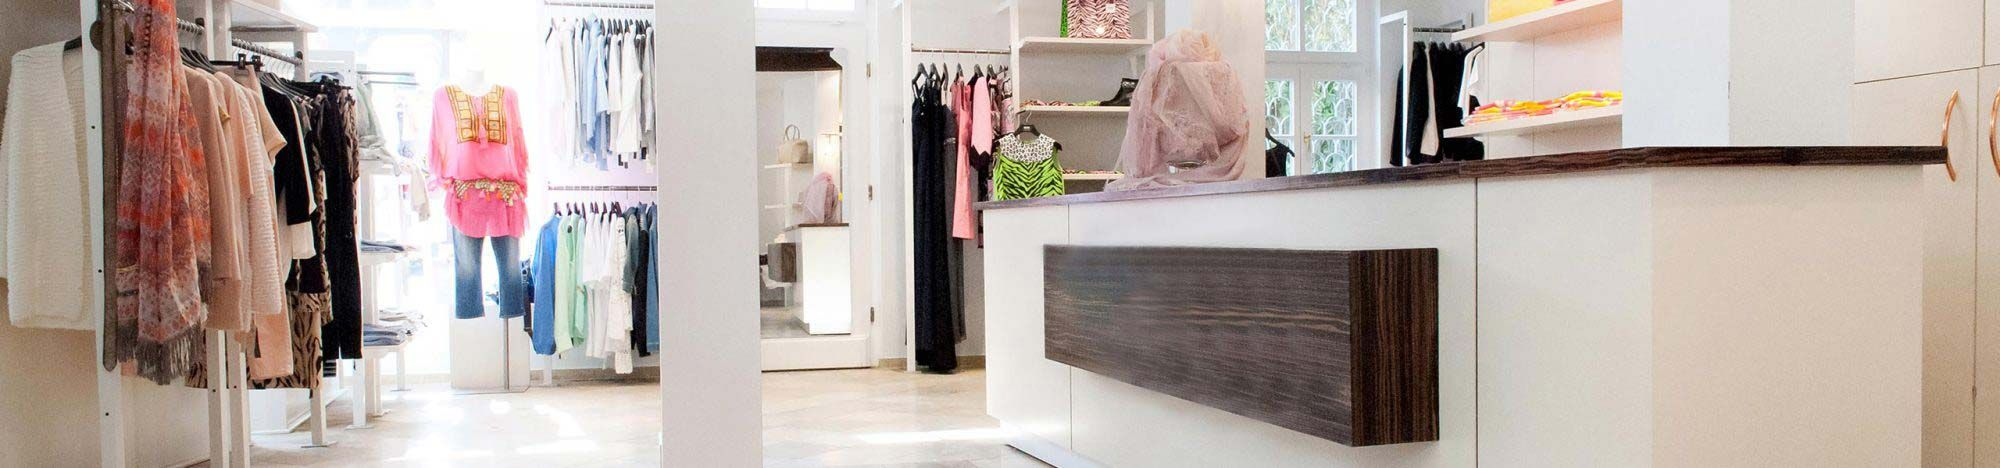 Boutique en Vogue in Recklinghausen